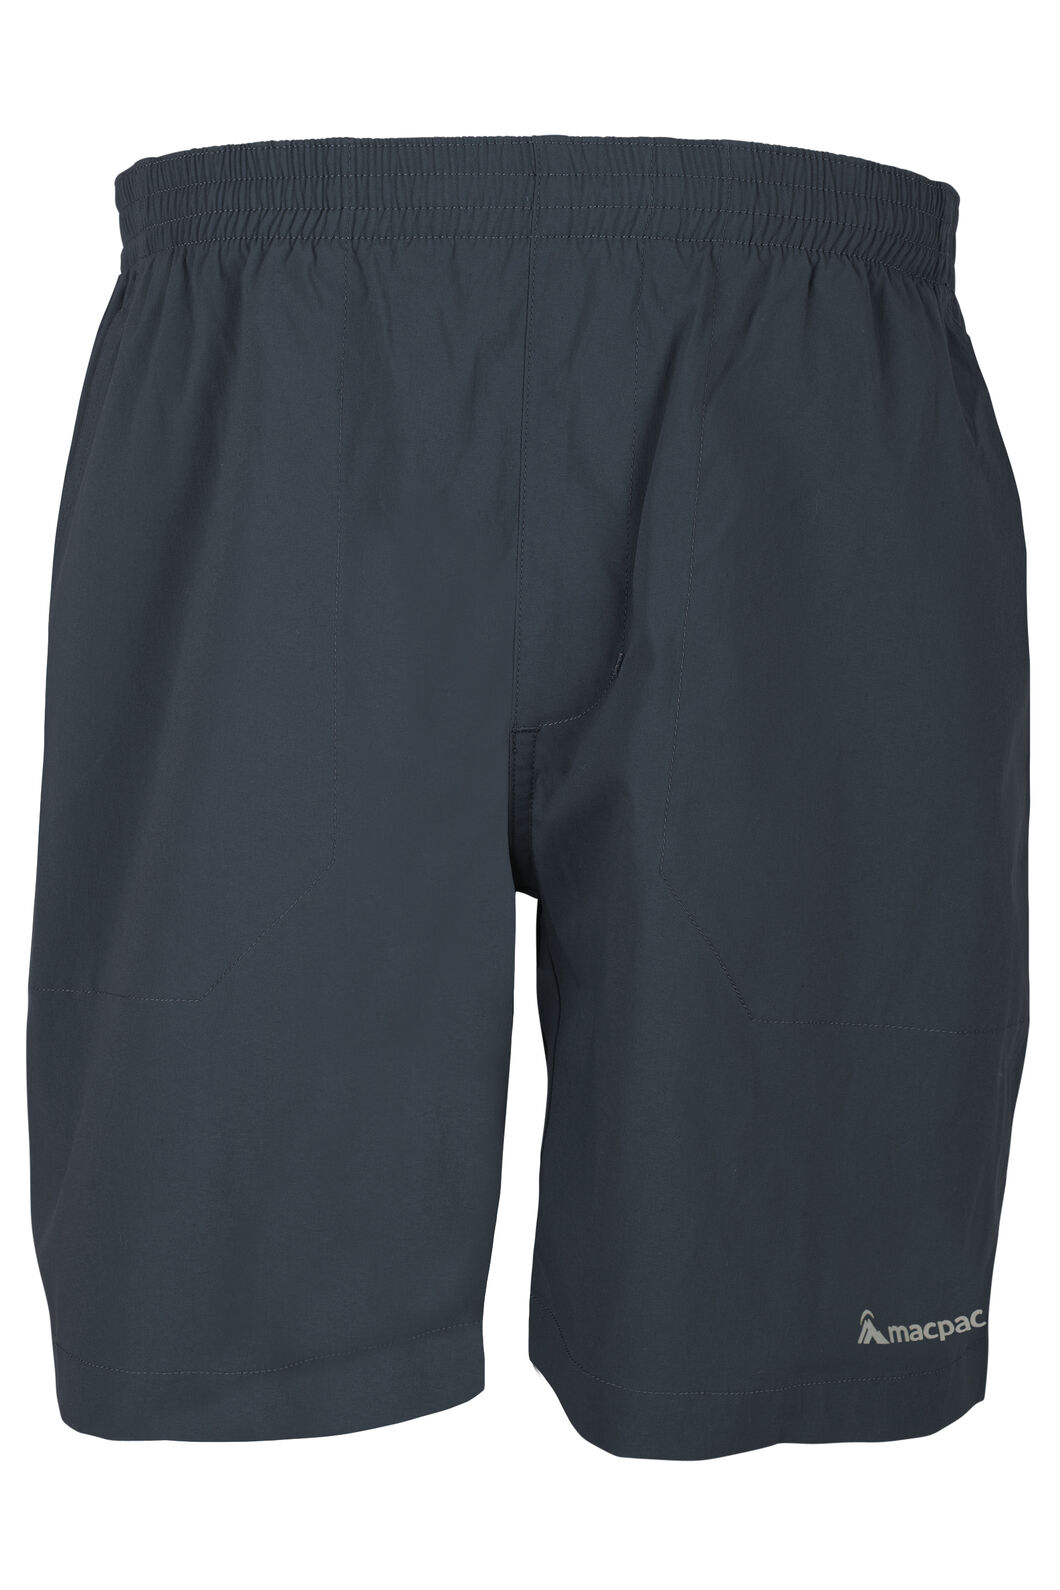 Macpac Rockover Shorts - Men's, Carbon, hi-res